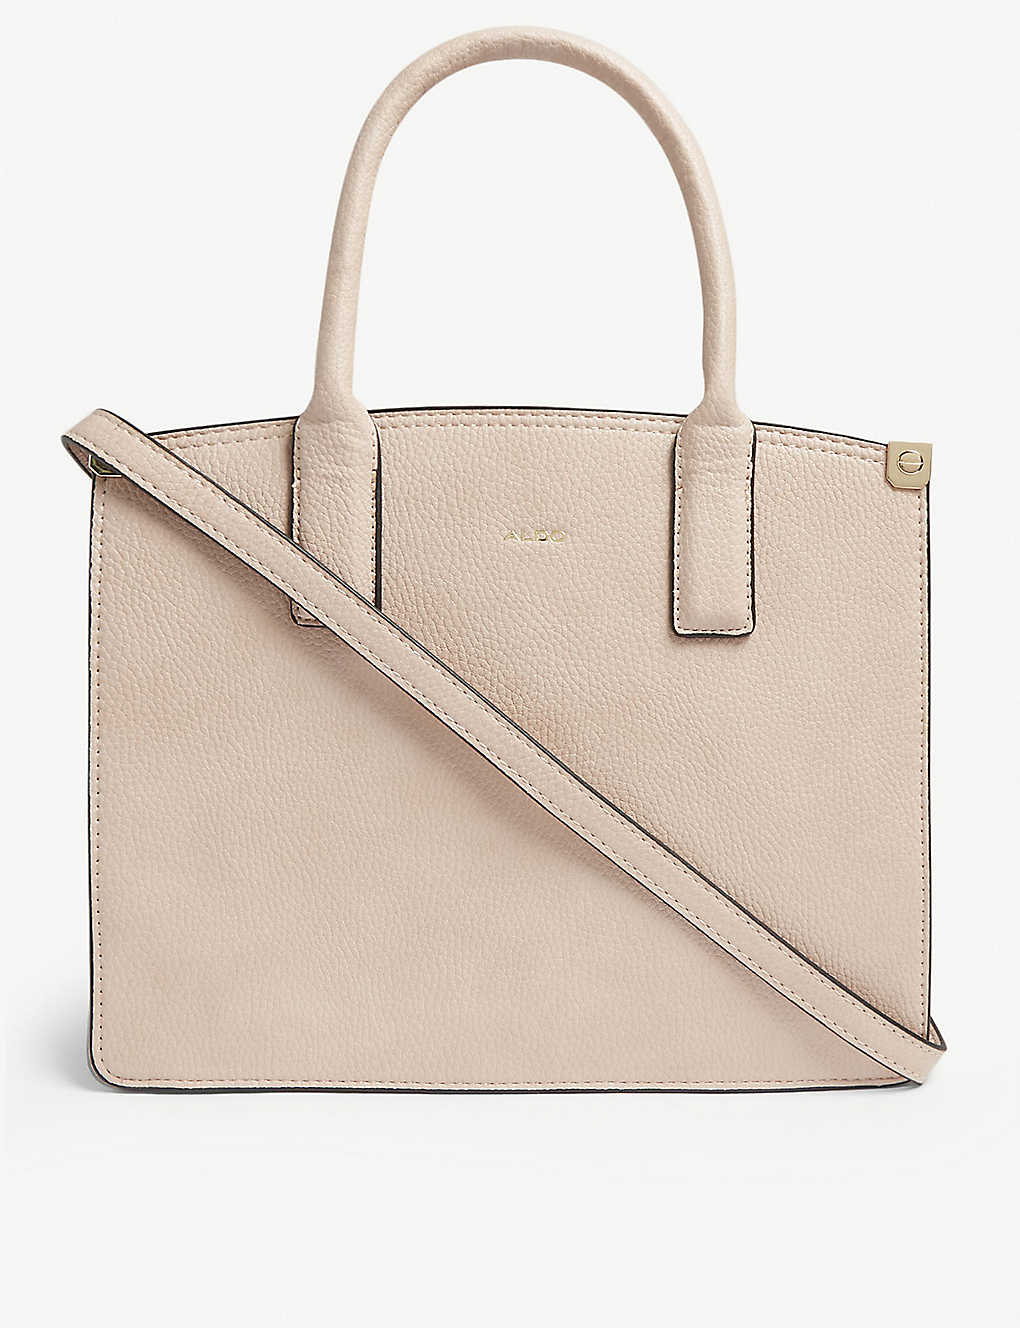 30a7e8b39d ALDO - Kaien faux-leather tote bag | Selfridges.com